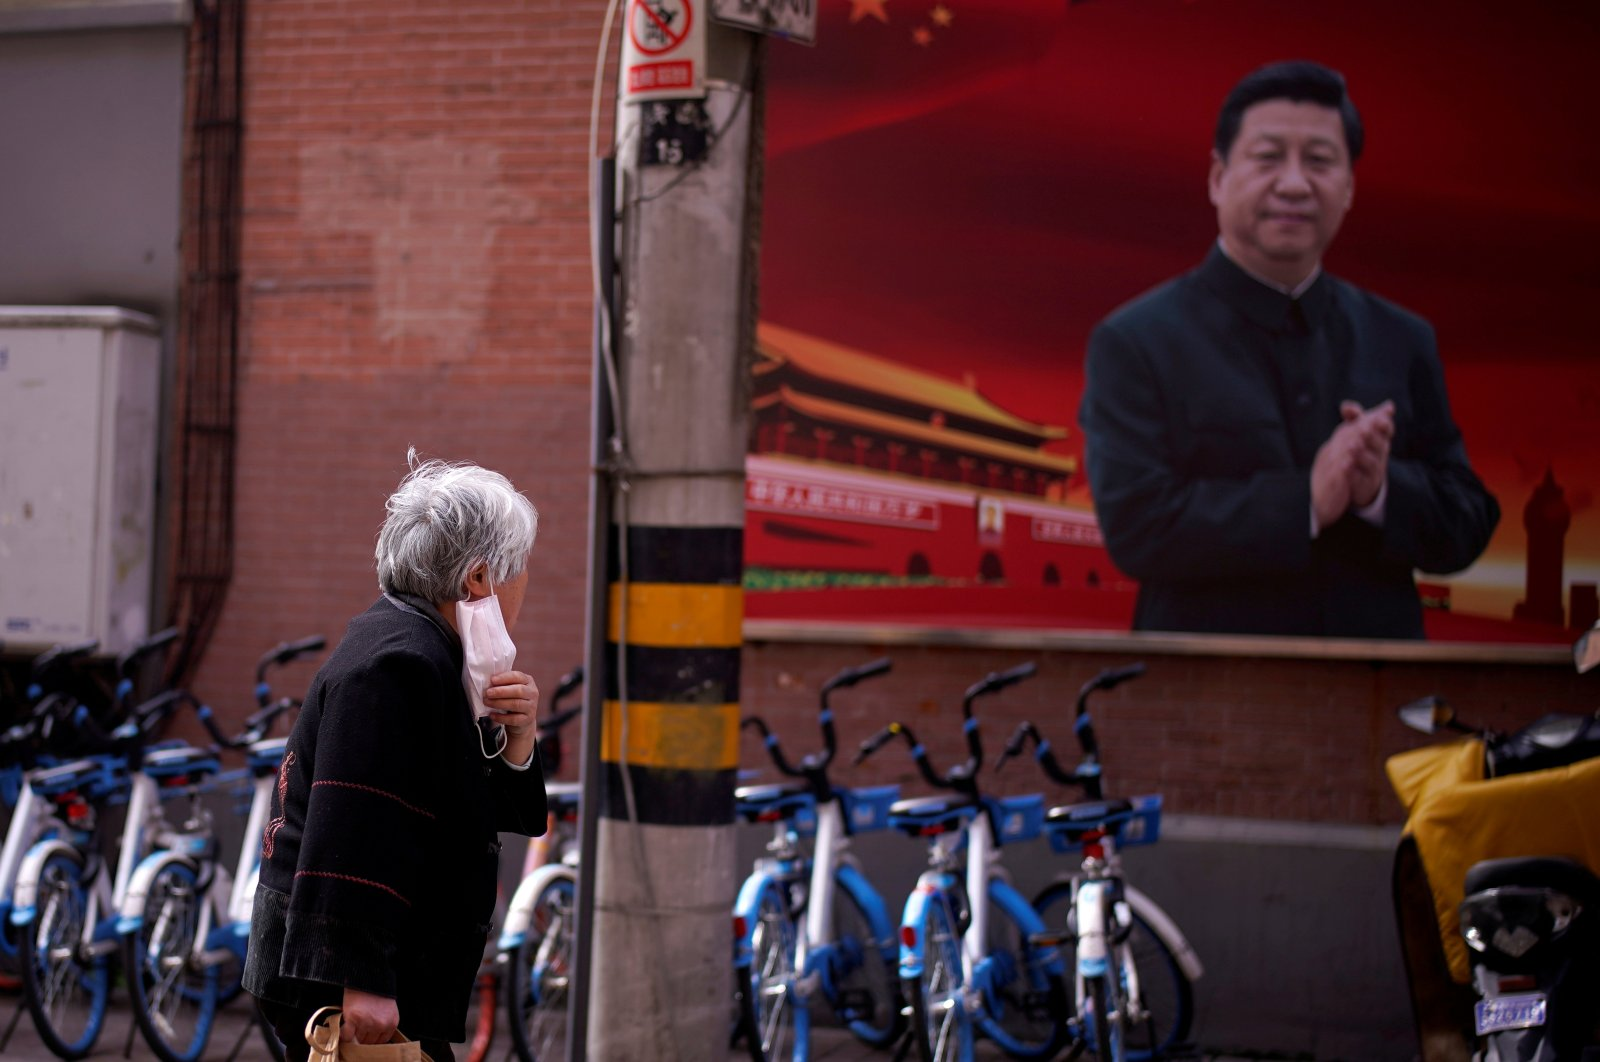 A woman with a protective mask is seen passing a portrait of Chinese President Xi Jinping on a street as the country is hit by an outbreak of the coronavirus, in Shanghai, China, March 12, 2020. (Reuters Photo)